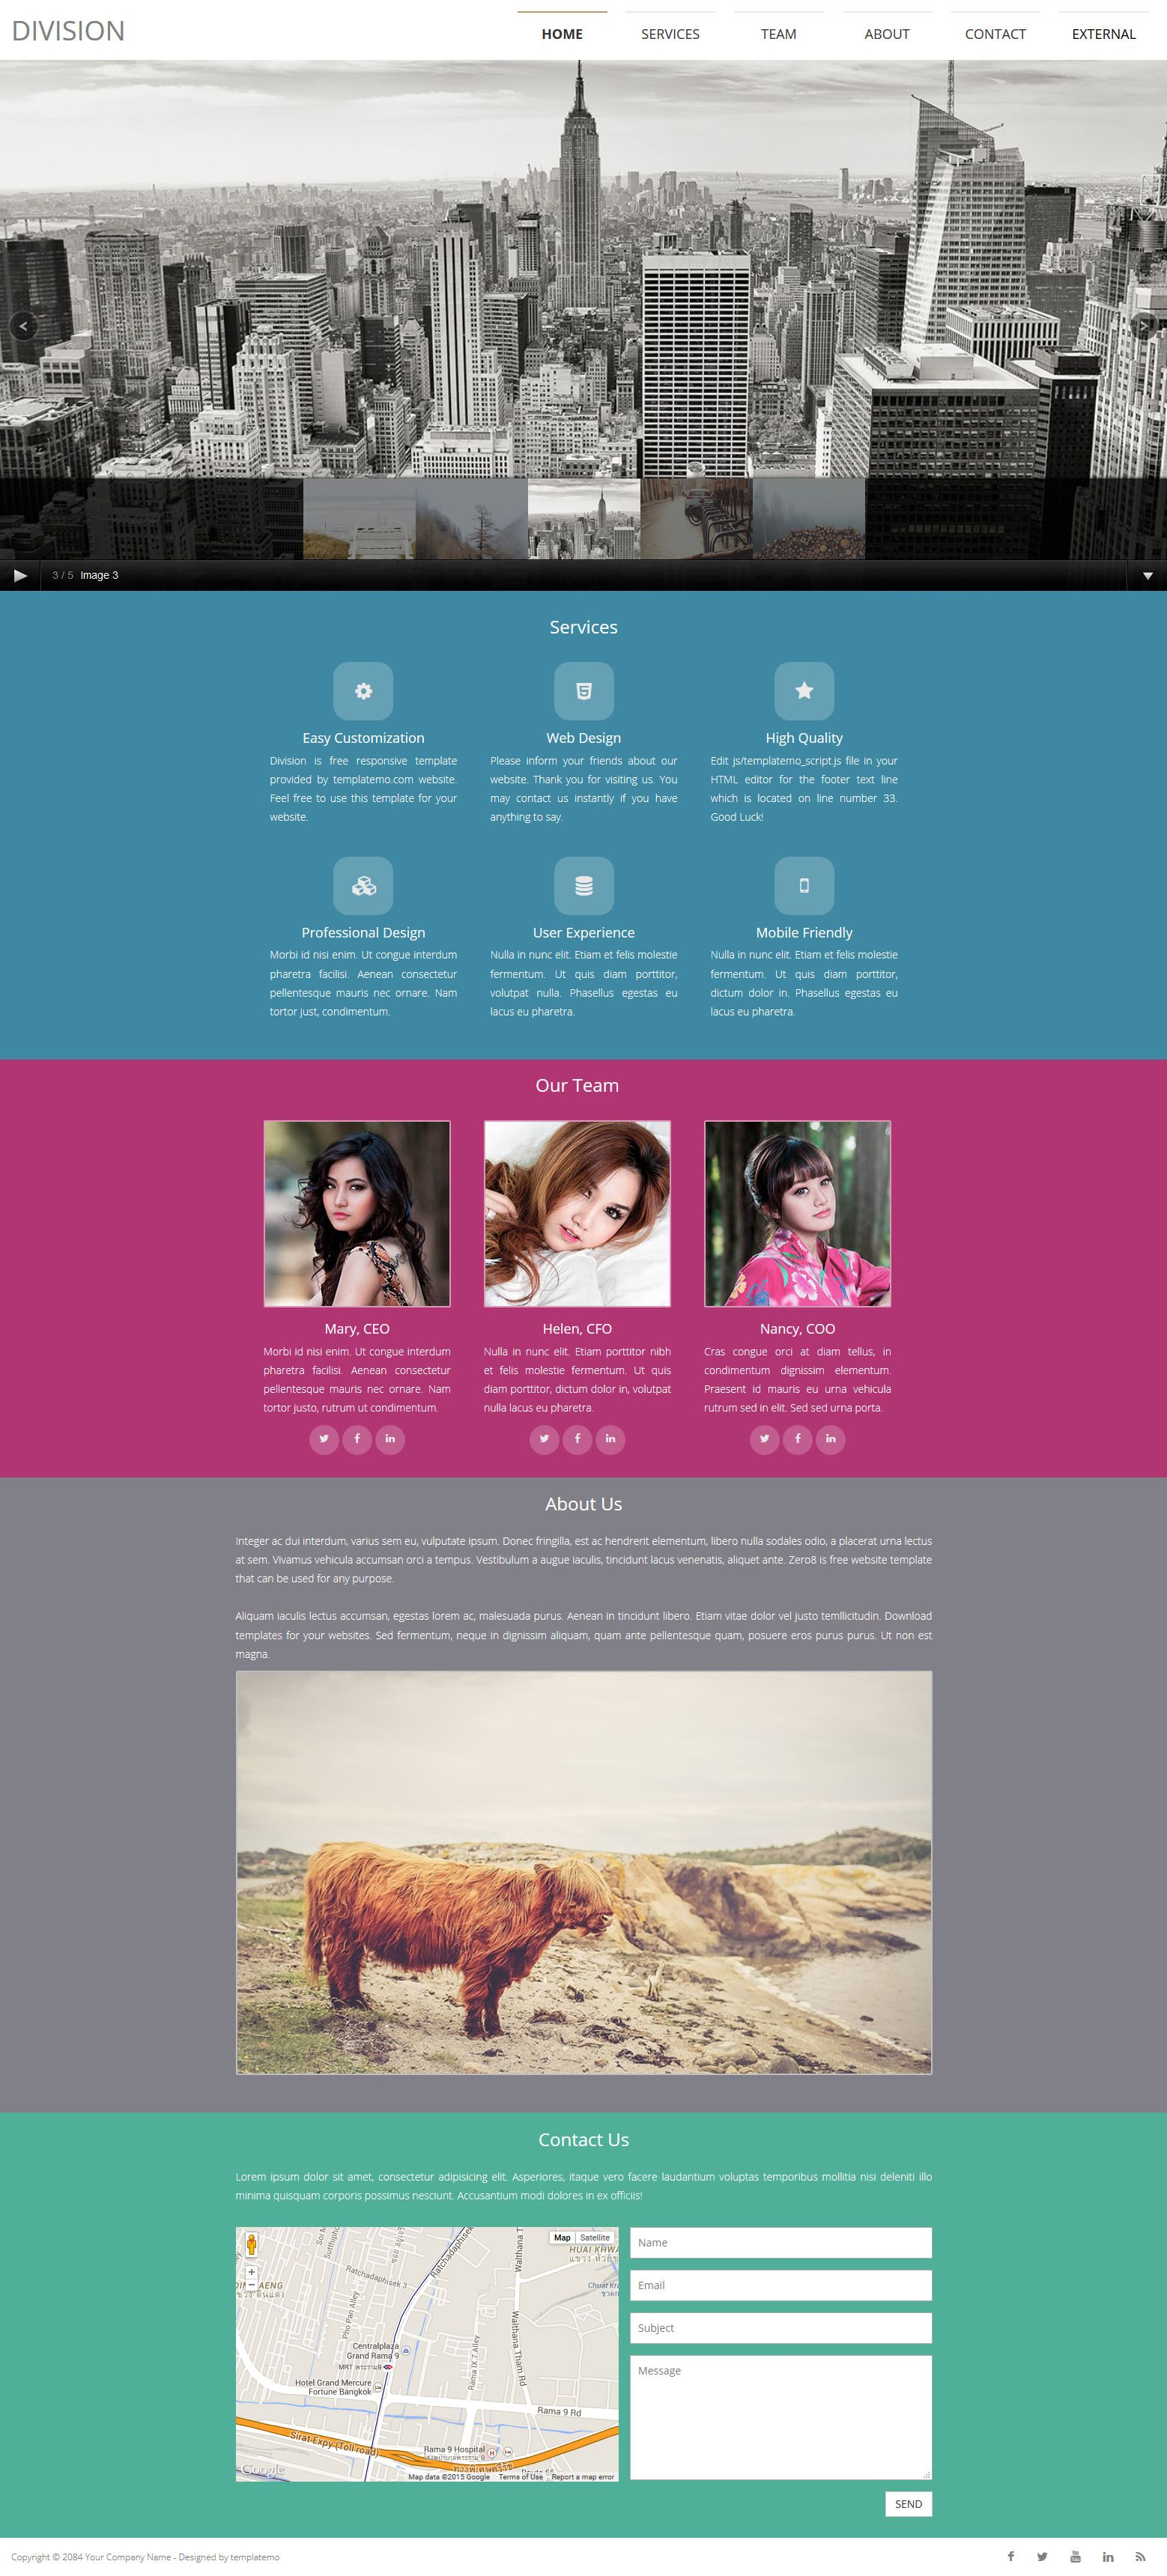 448 Division Template Css Templates Html And Css Templates Css Website Templates